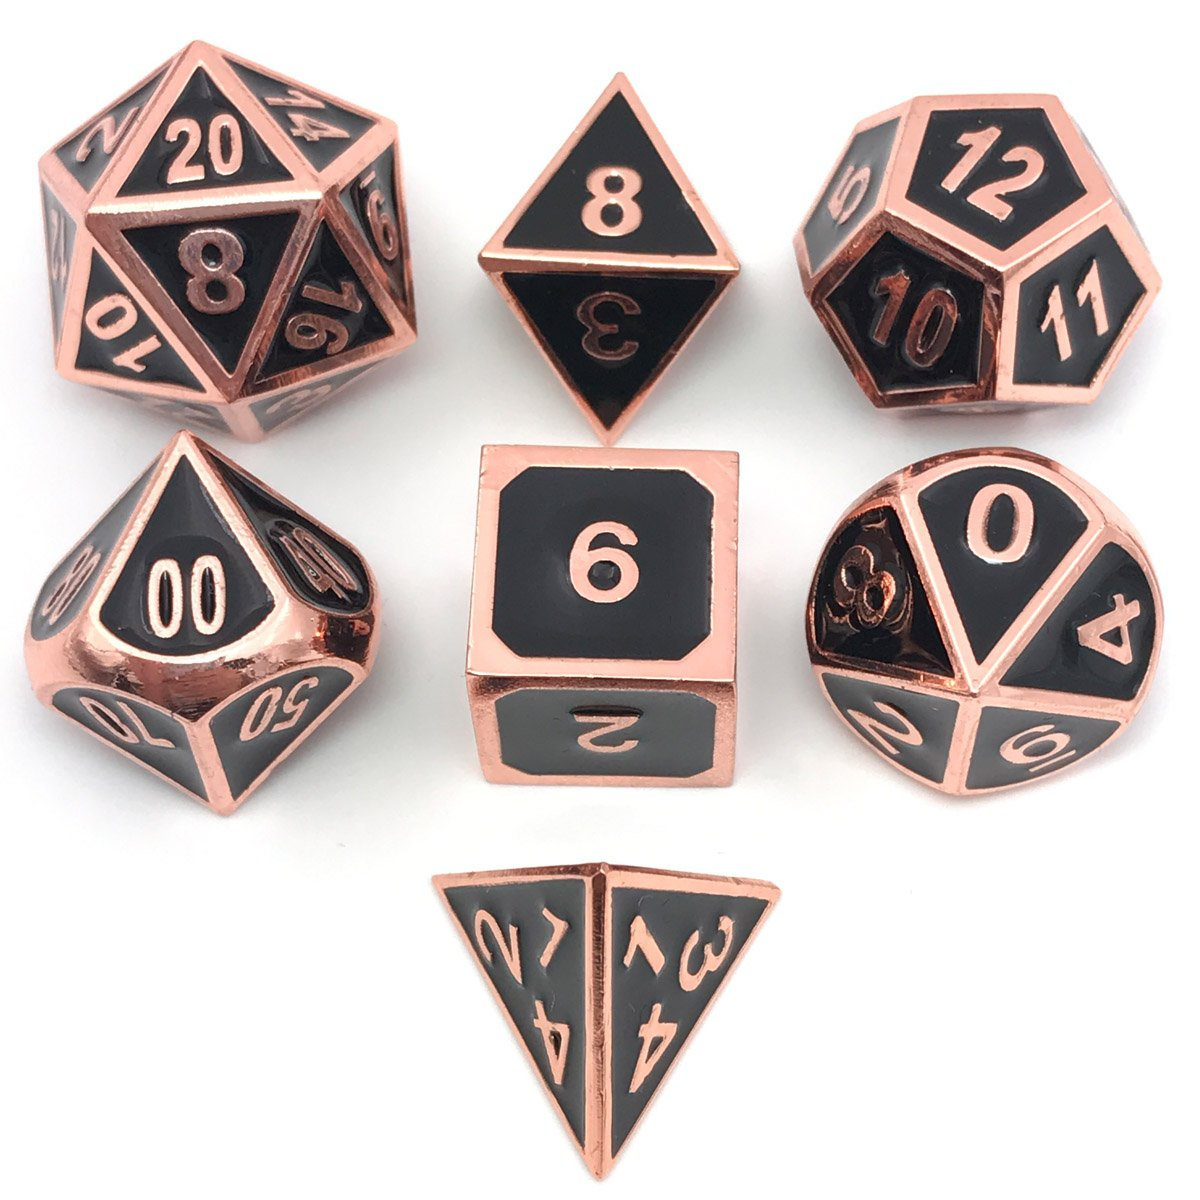 IvyFieldDice Set of Solid Metal Dice – Shiny Copper with Black Enamel Great for Role Playing Games(RPG)